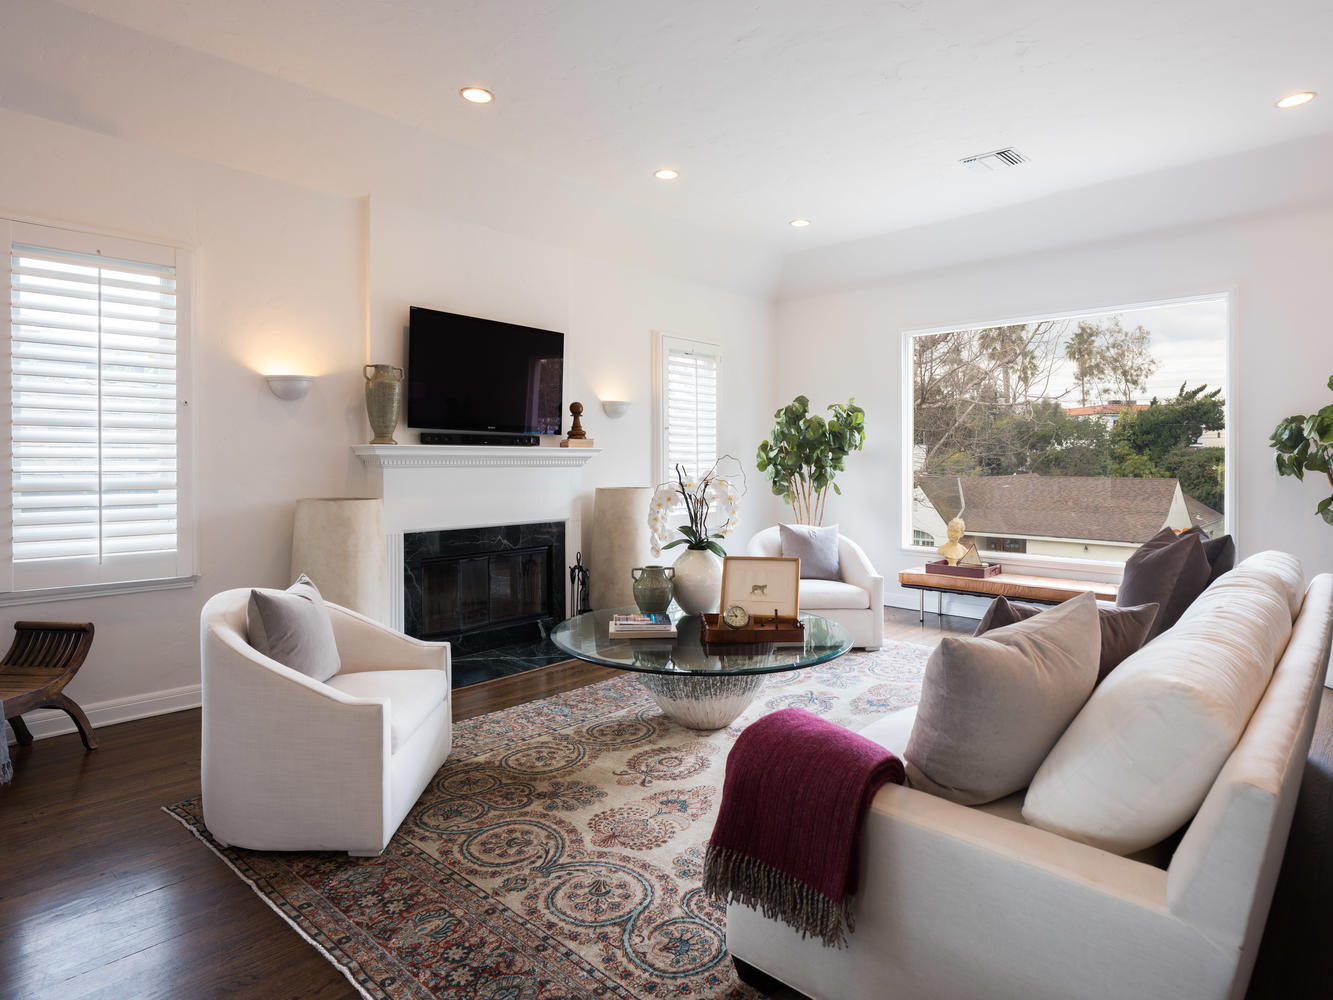 10558 Putney Rd Los Angeles CA-large-003-20-Living Room-1334x1000-72dpi.jpg